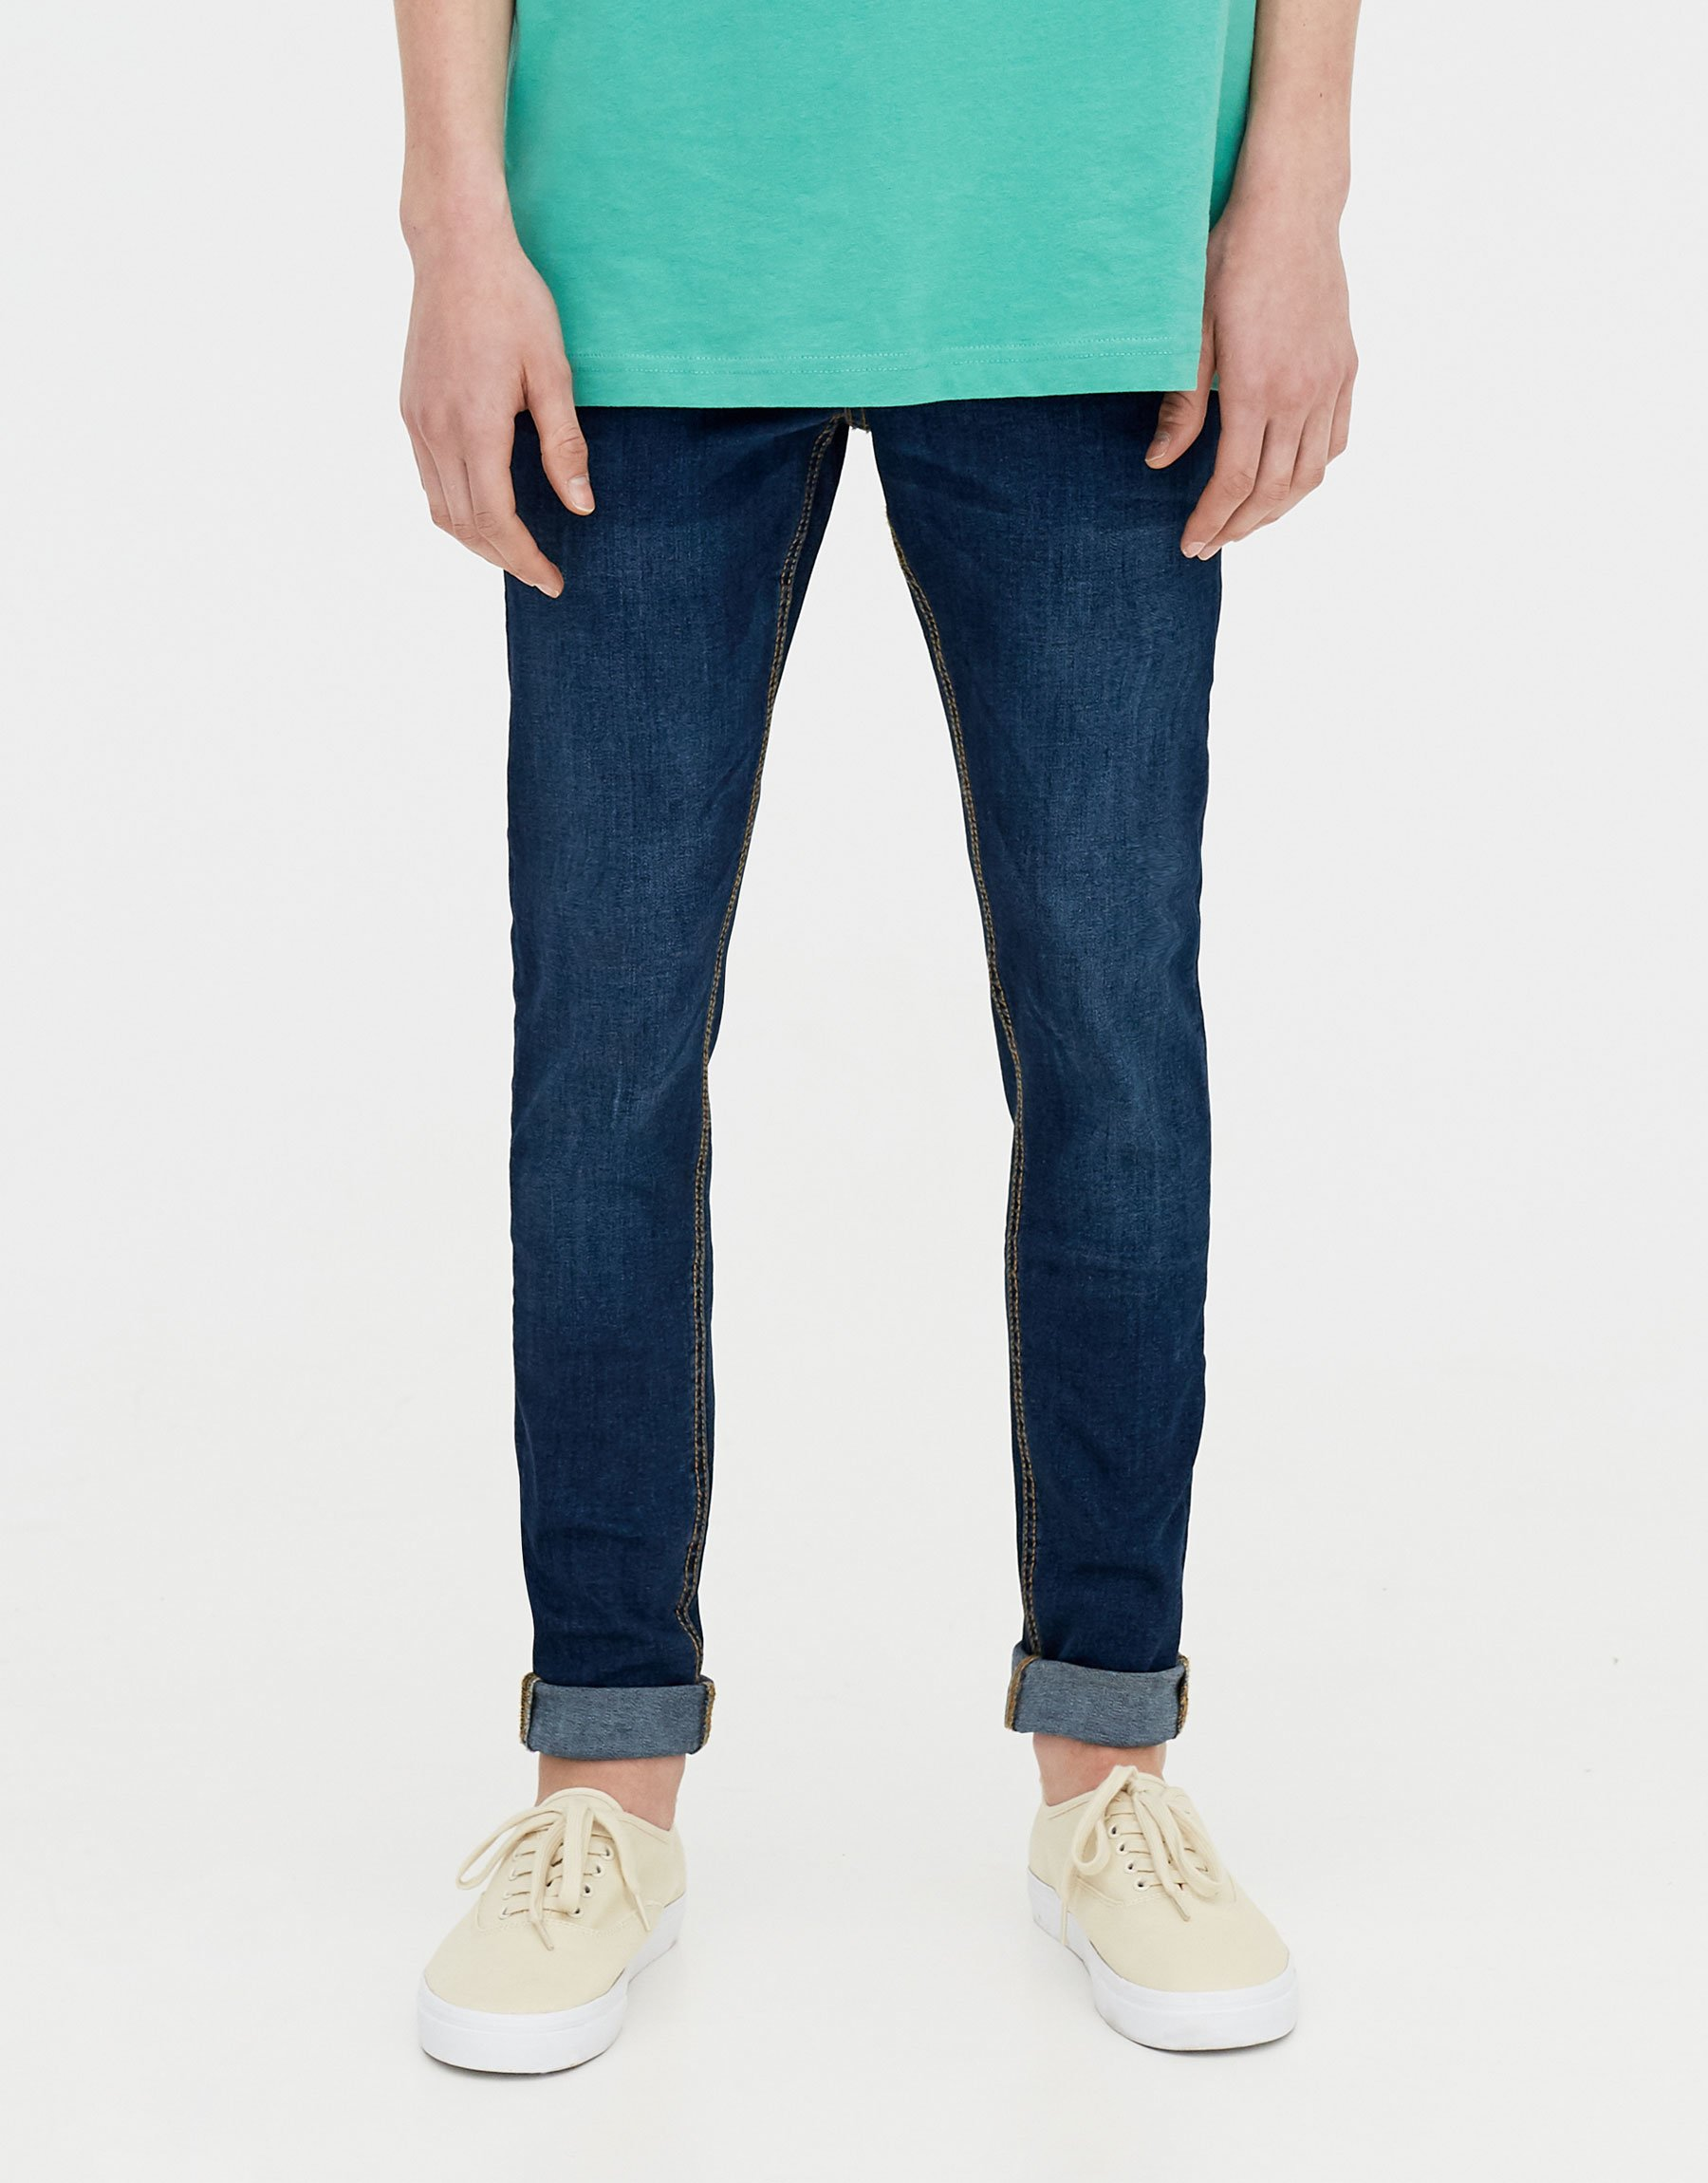 фото Джинси Pull and Bear super skinny 5687/541/405